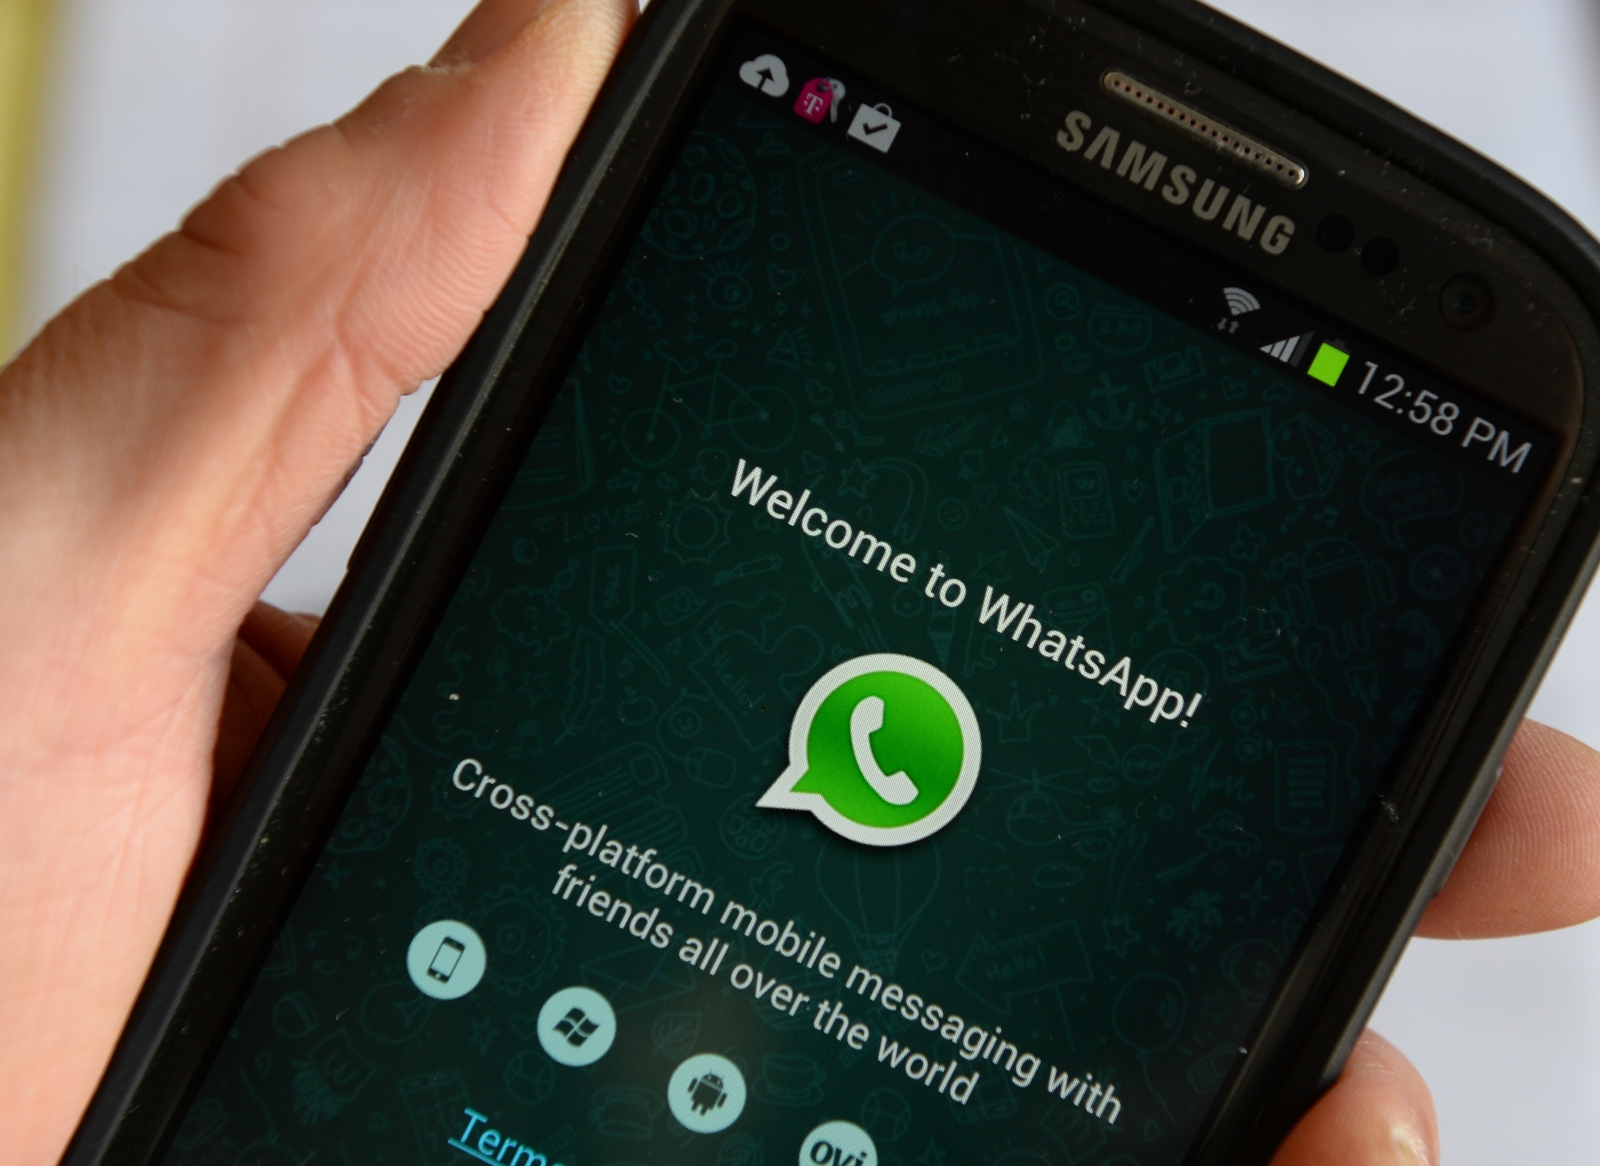 BBC is launching a new health information service over WhatsApp in West Africa